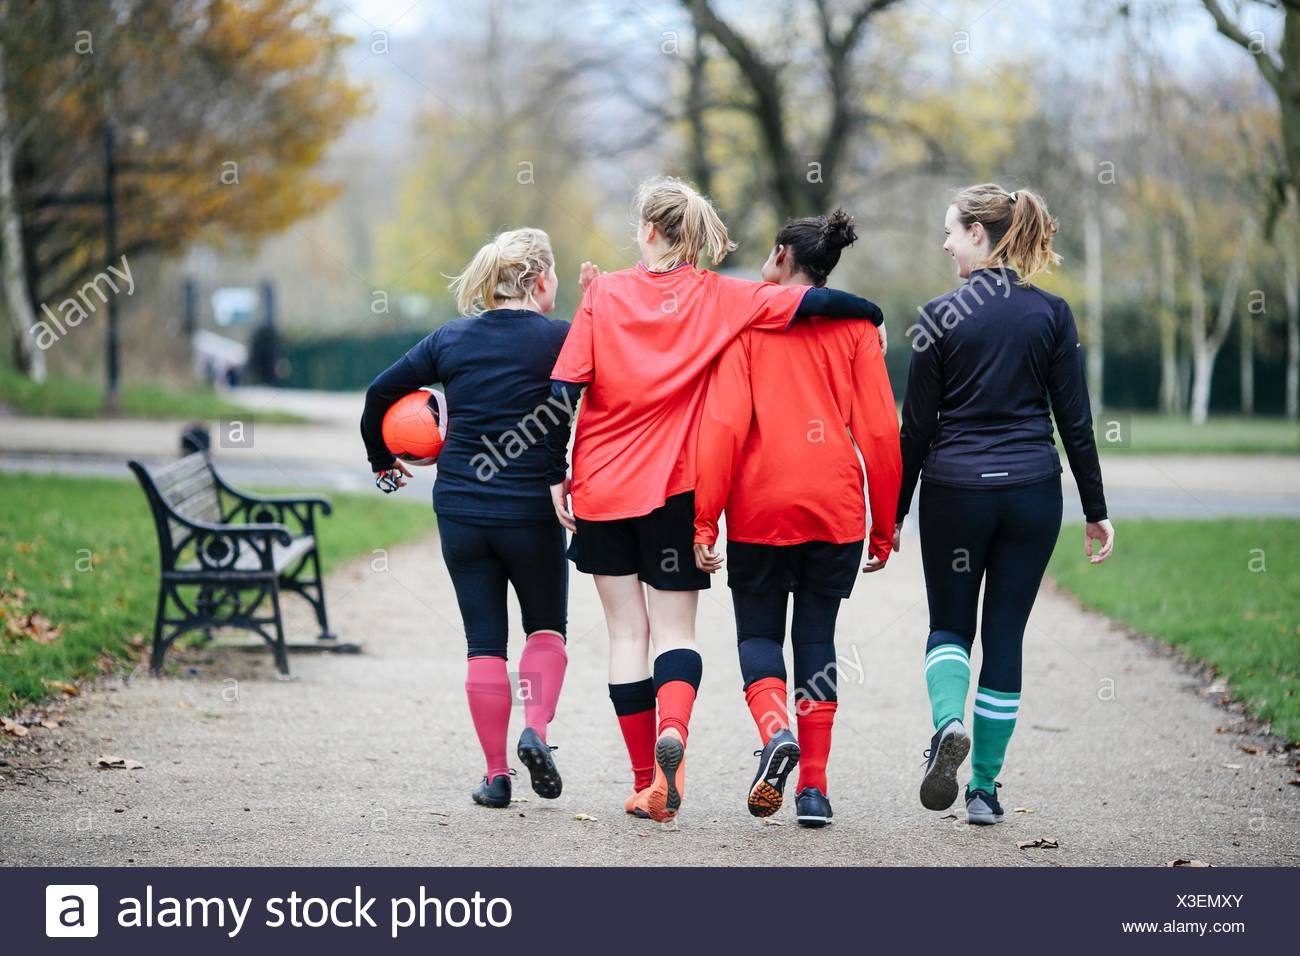 Rear view of female soccer players en route to play soccer in park Stock Photo